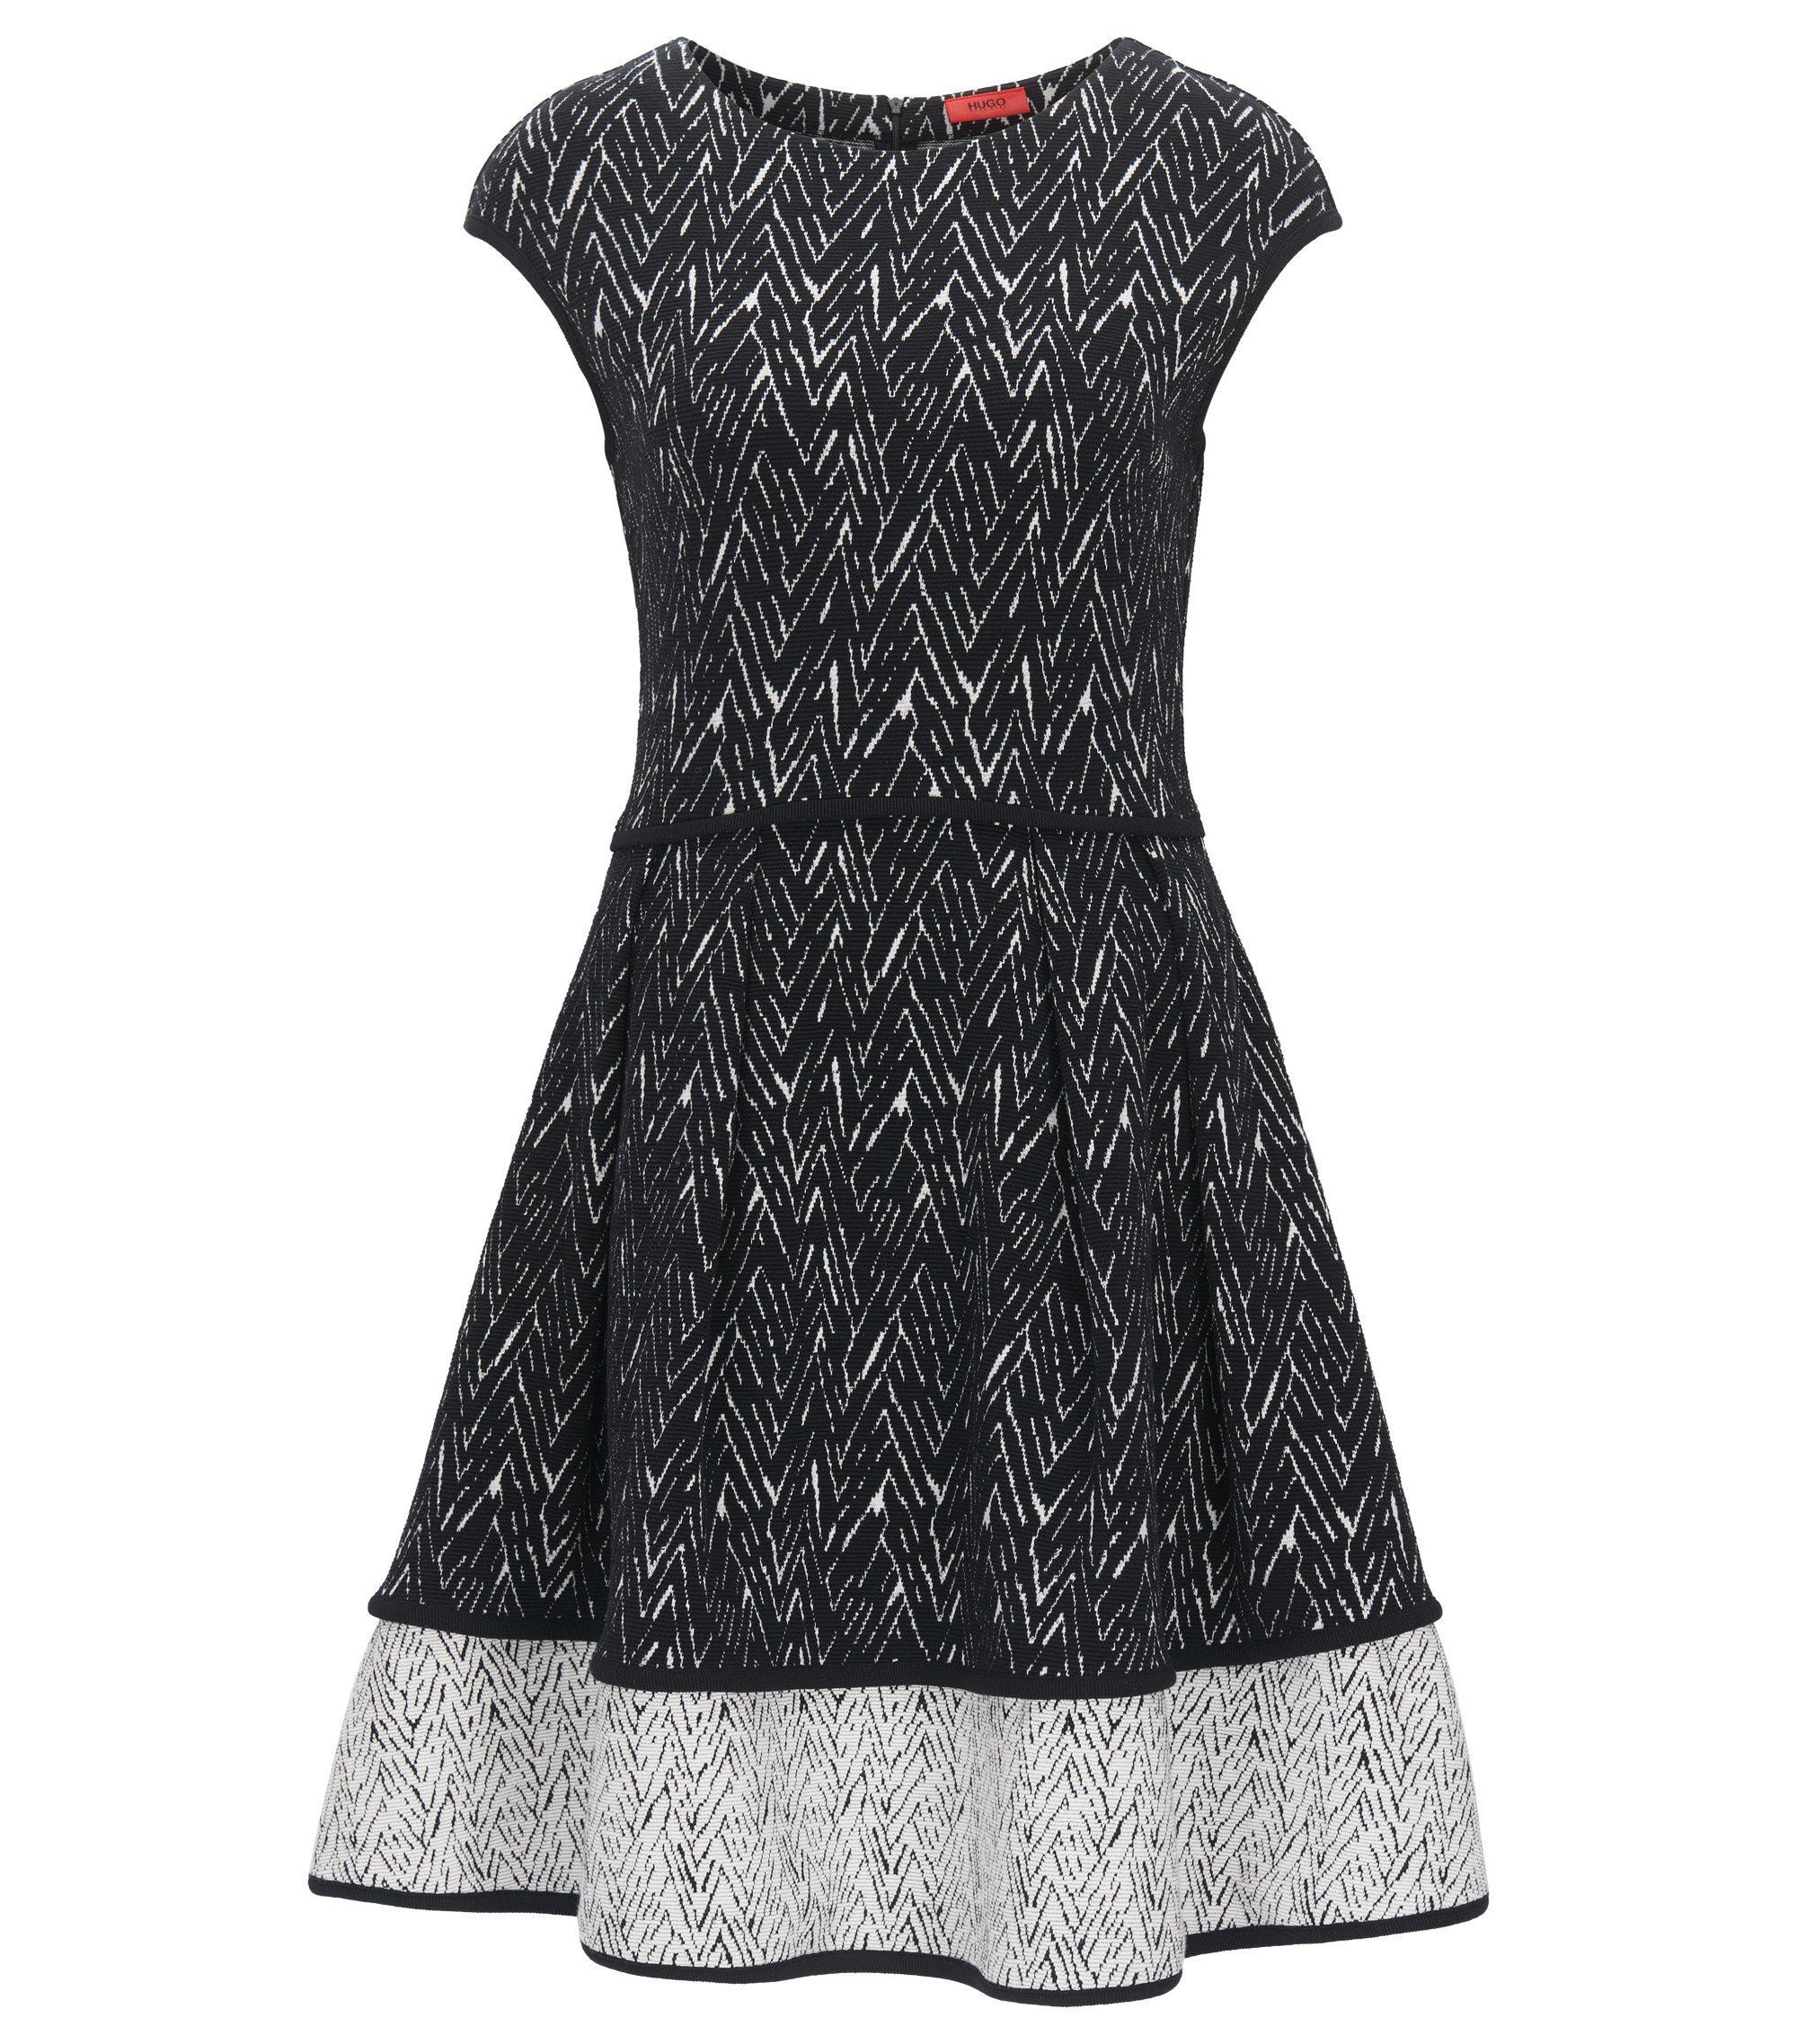 Zig-Zag Jacquard Stretch Cotton Dress | Nikena, Patterned